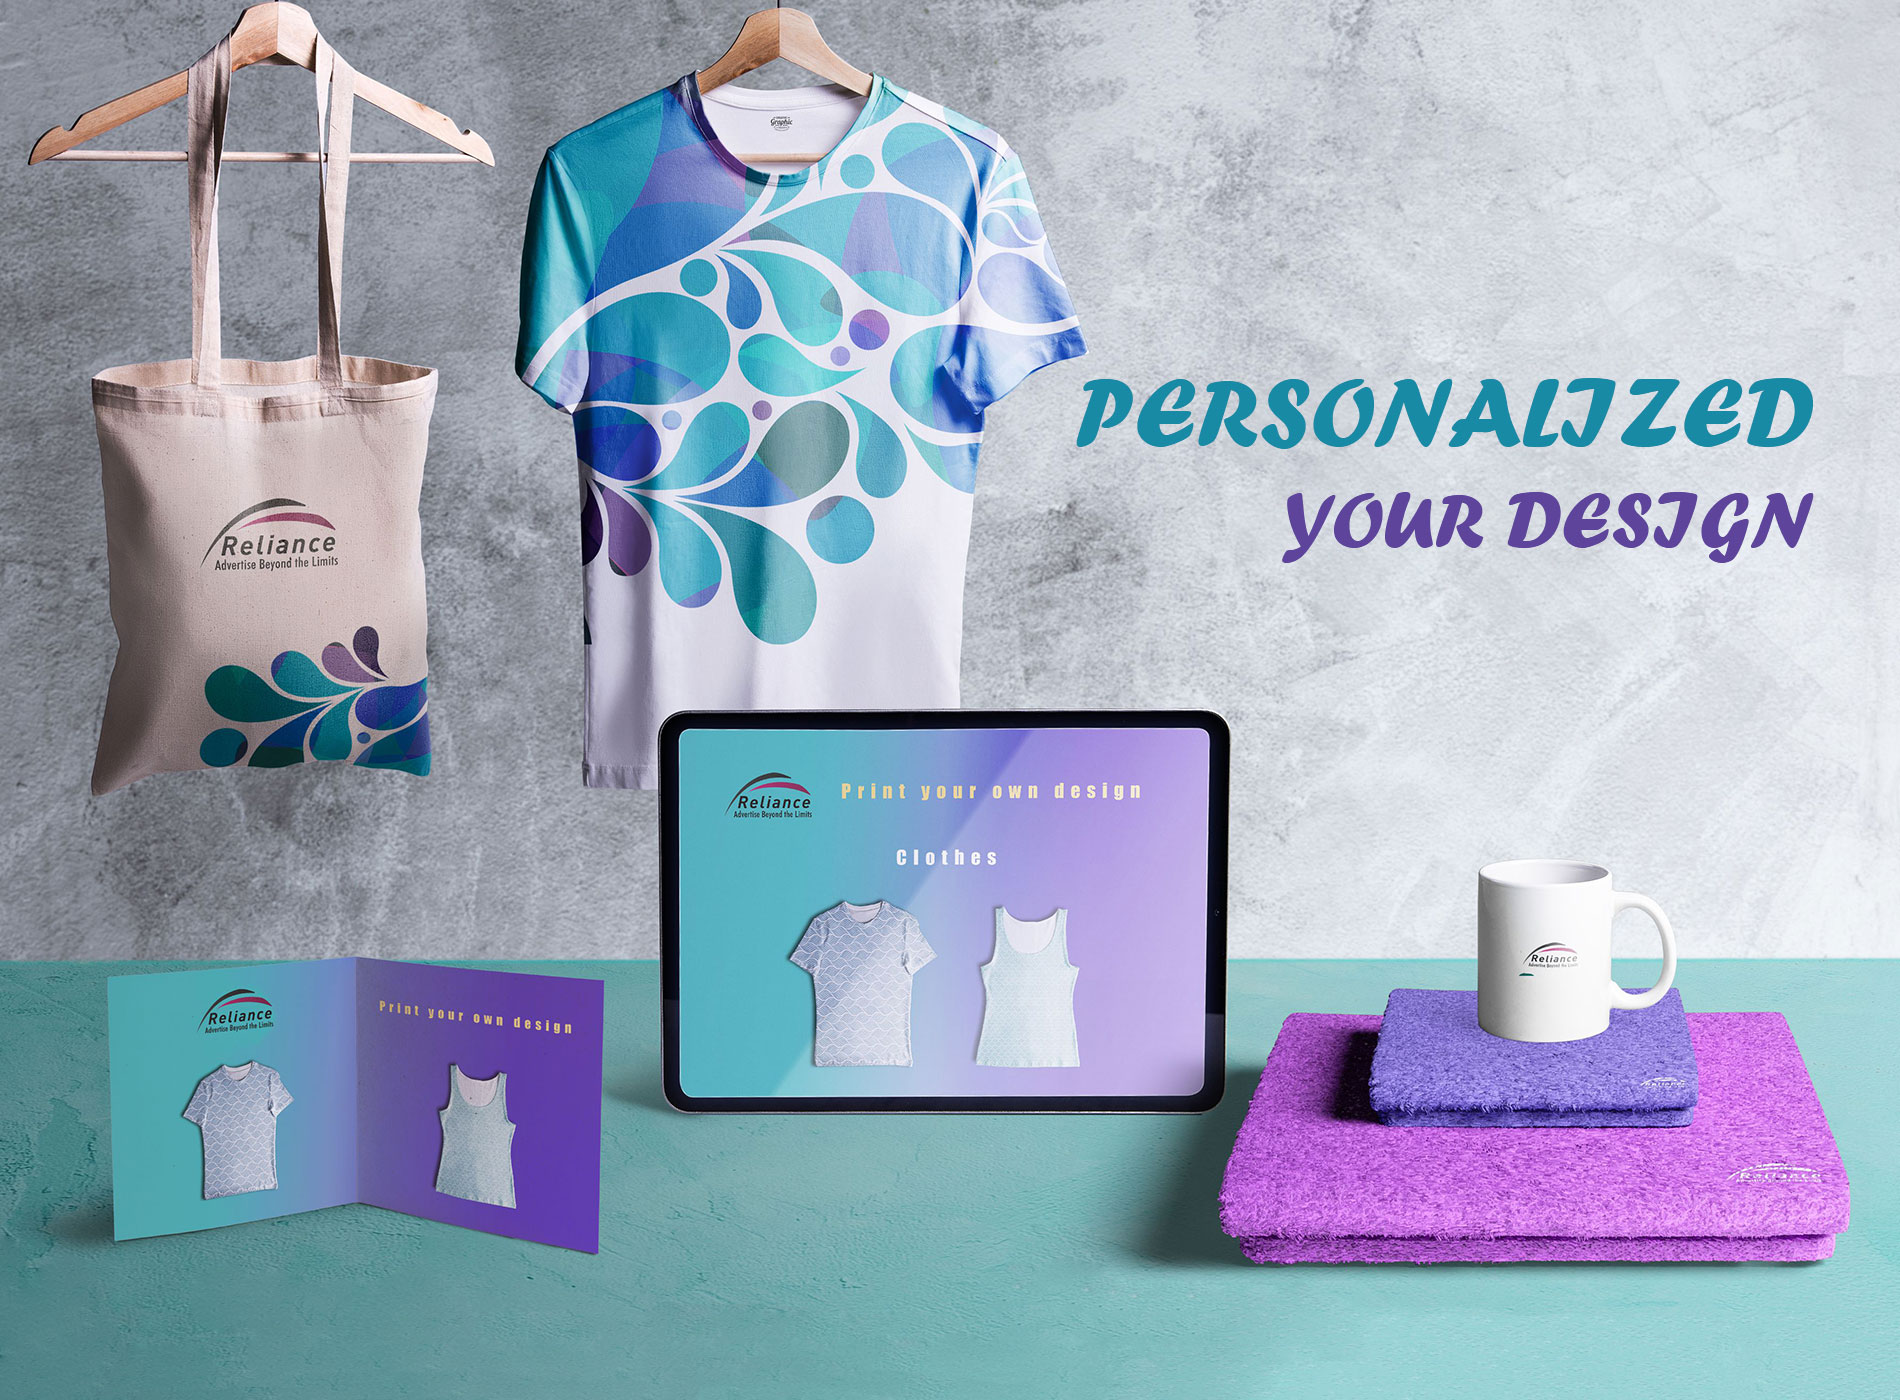 Personalized design